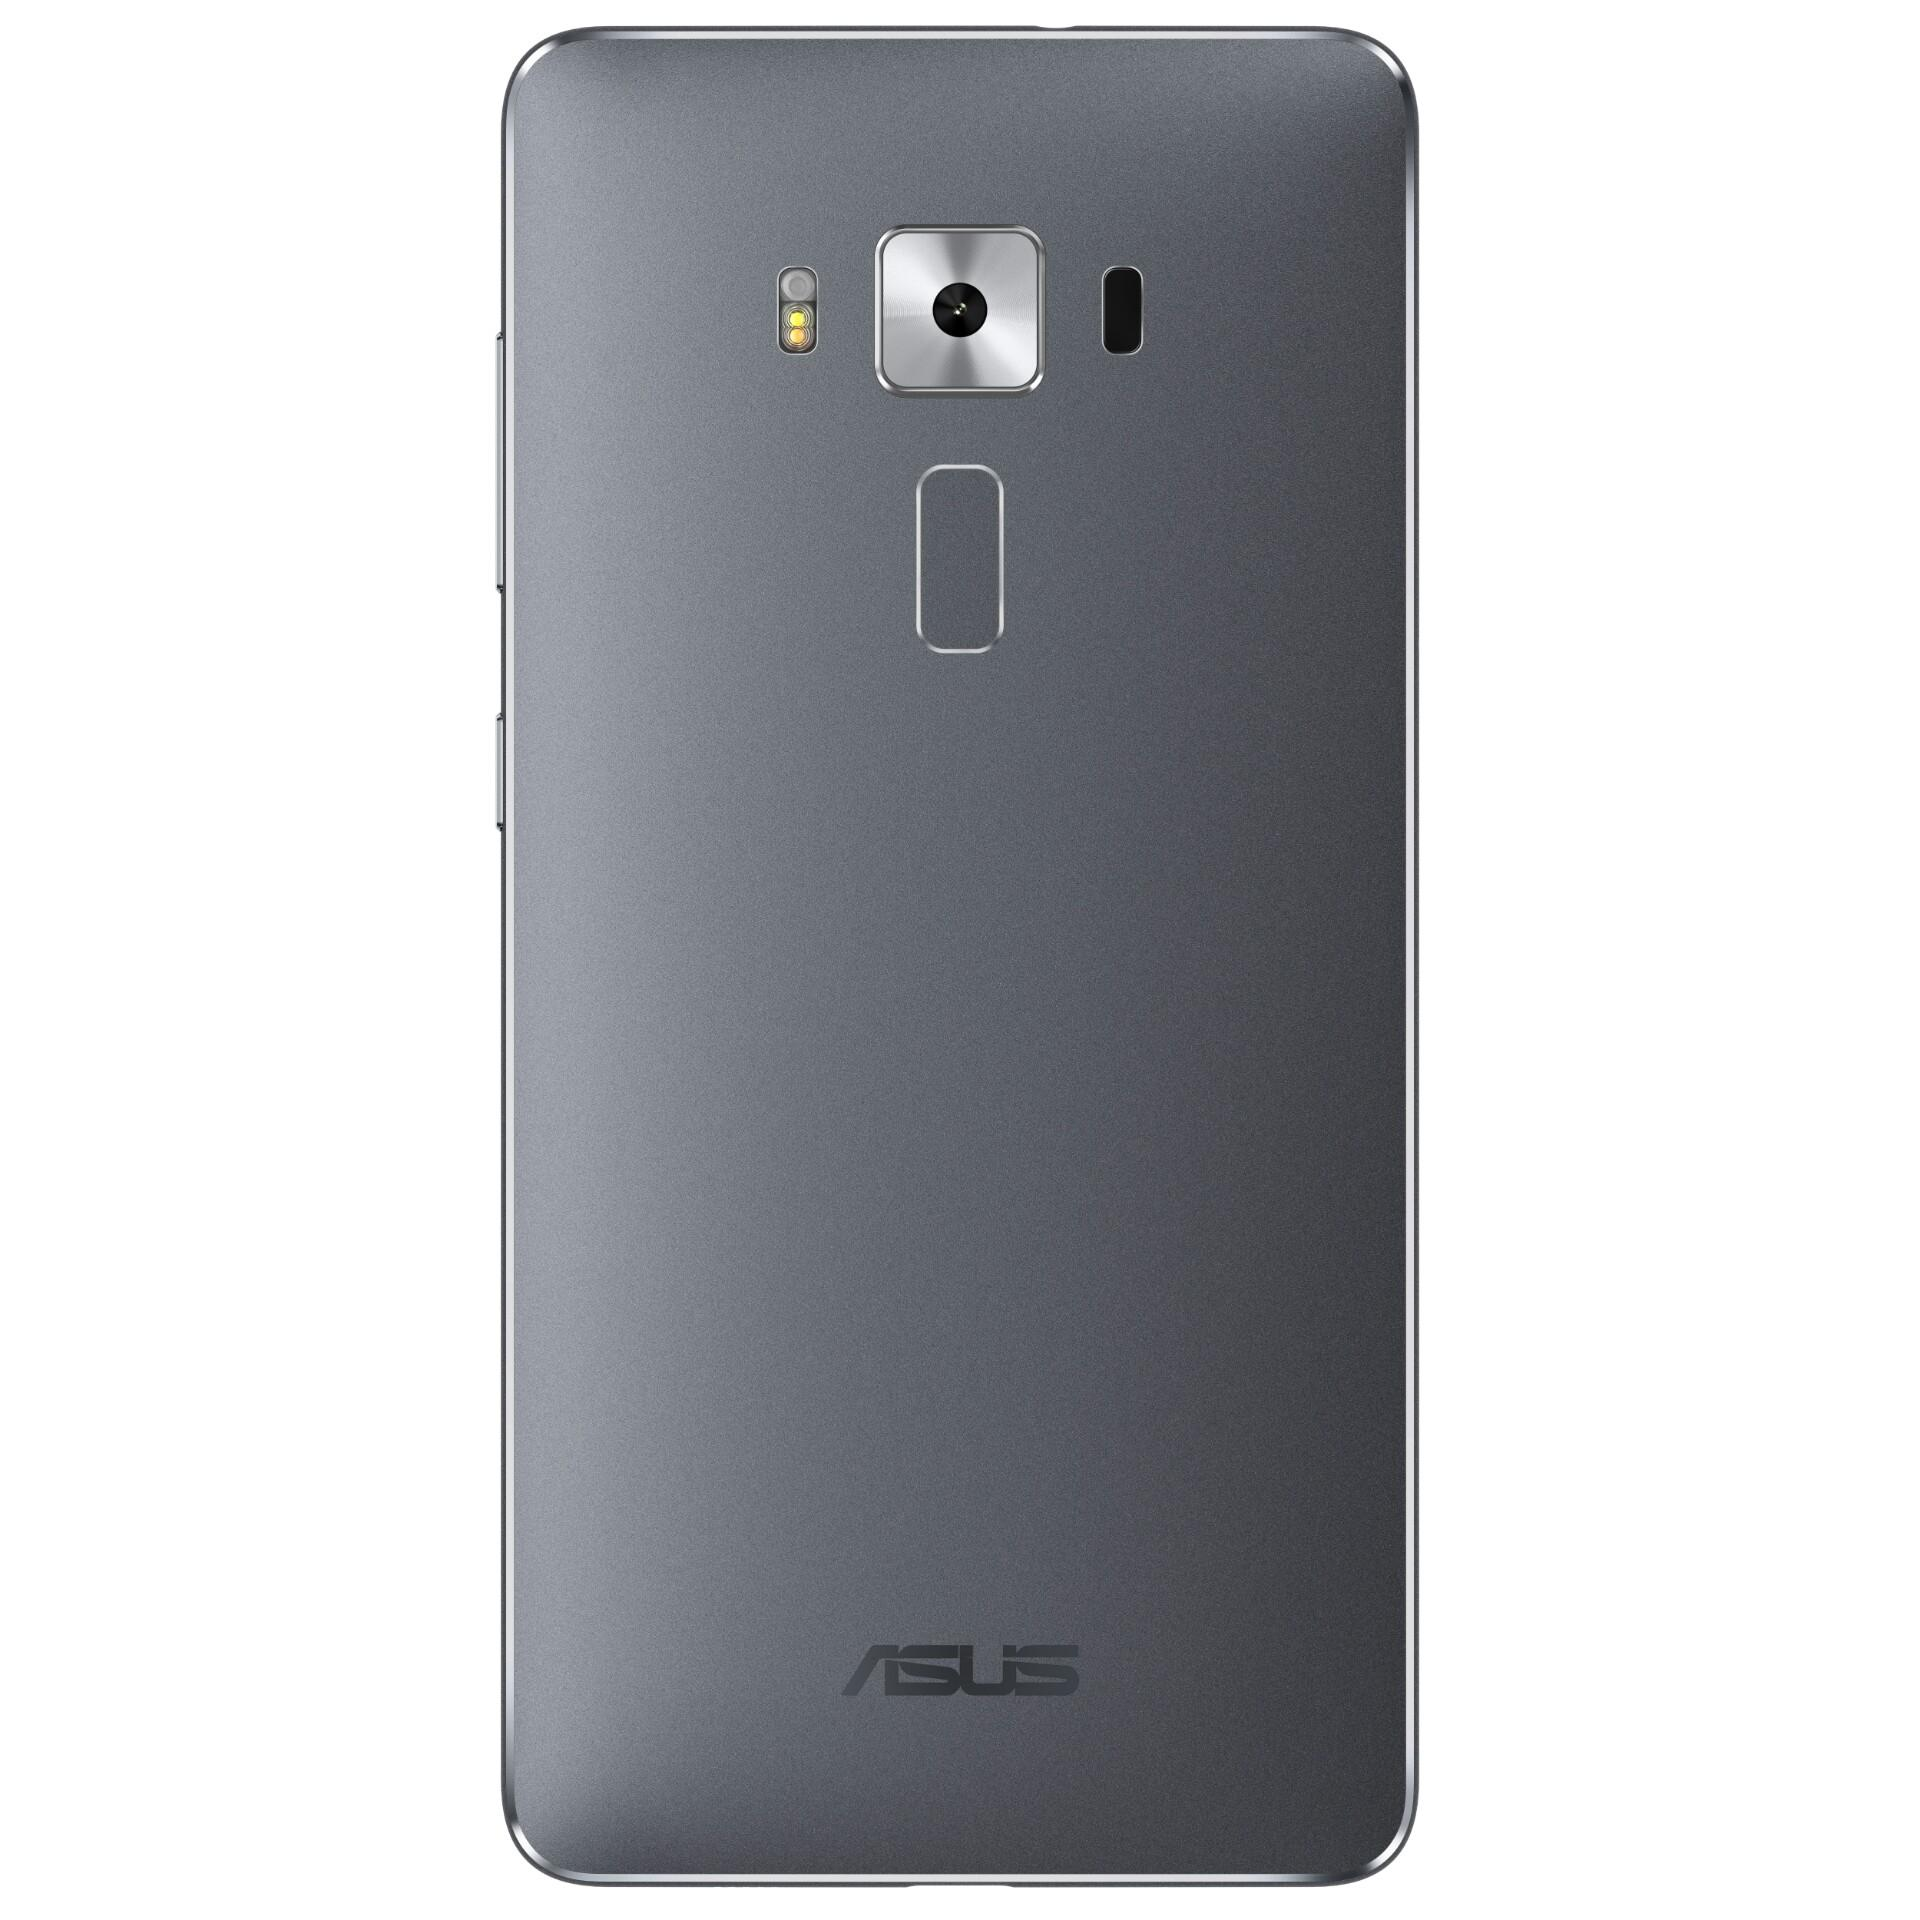 asus zenfone 3 deluxe zs570kl grey image gallery. Black Bedroom Furniture Sets. Home Design Ideas